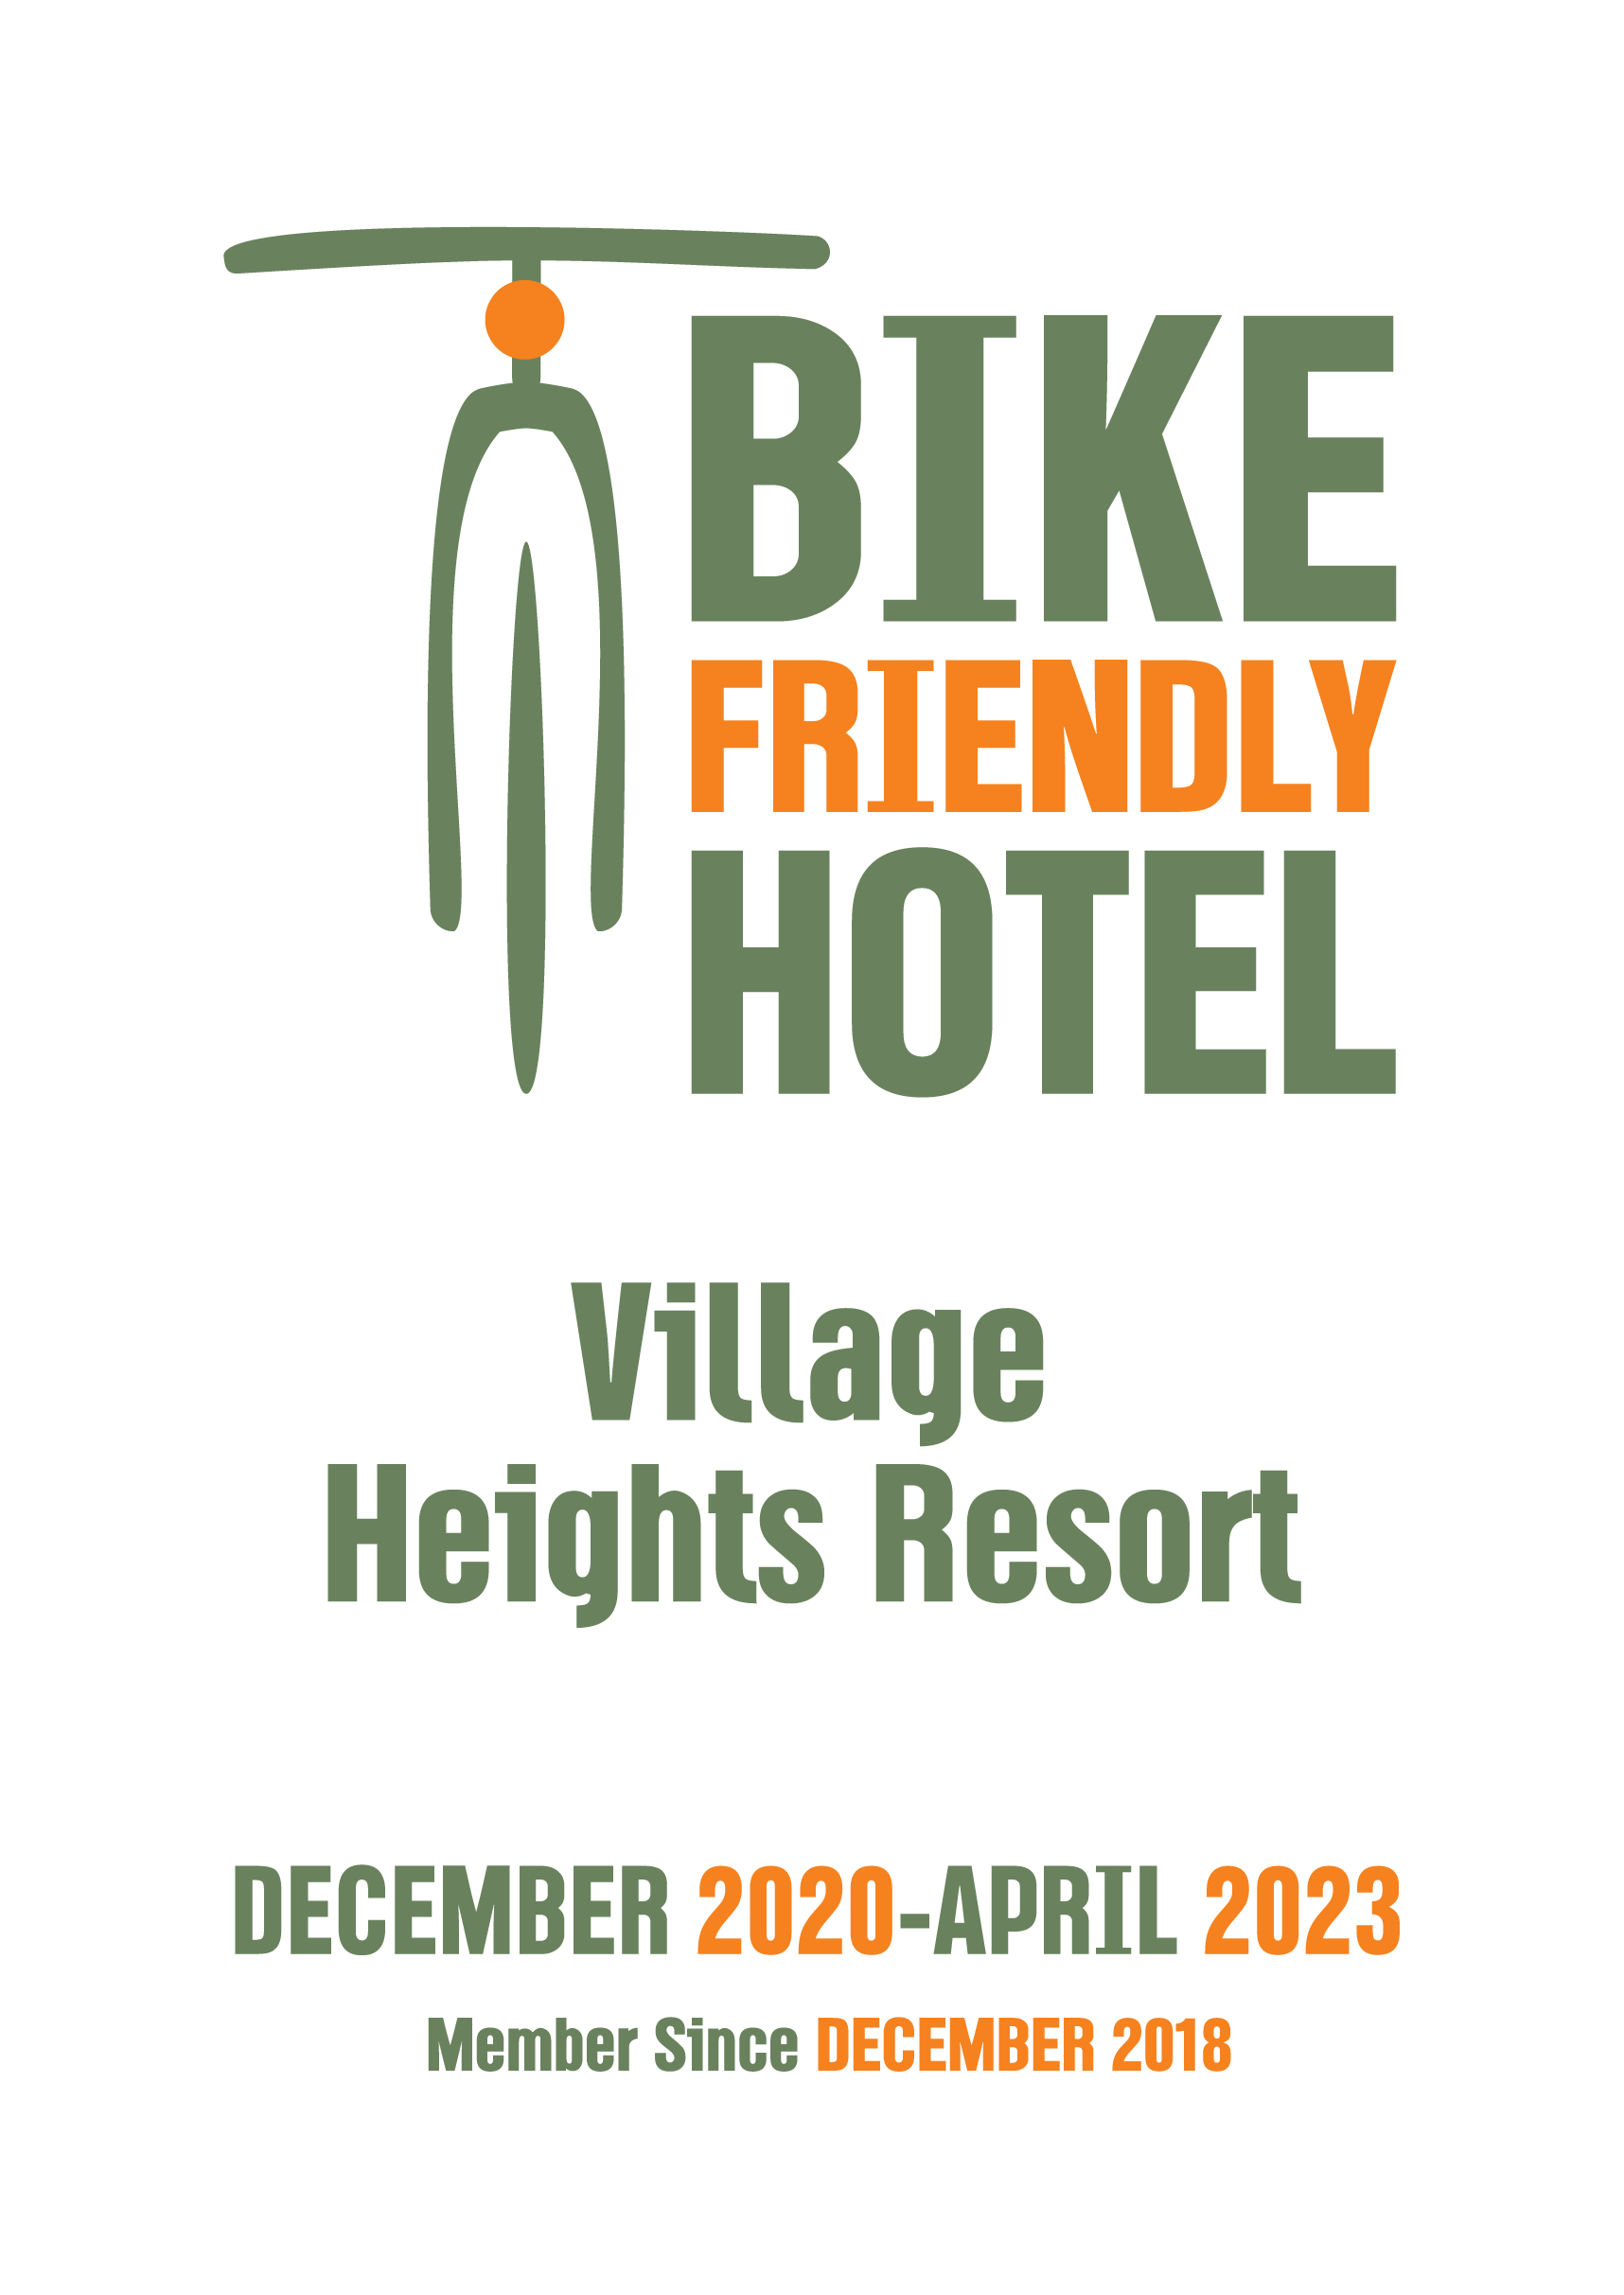 Village Heights Resort Is A Bike Friendly Hotel